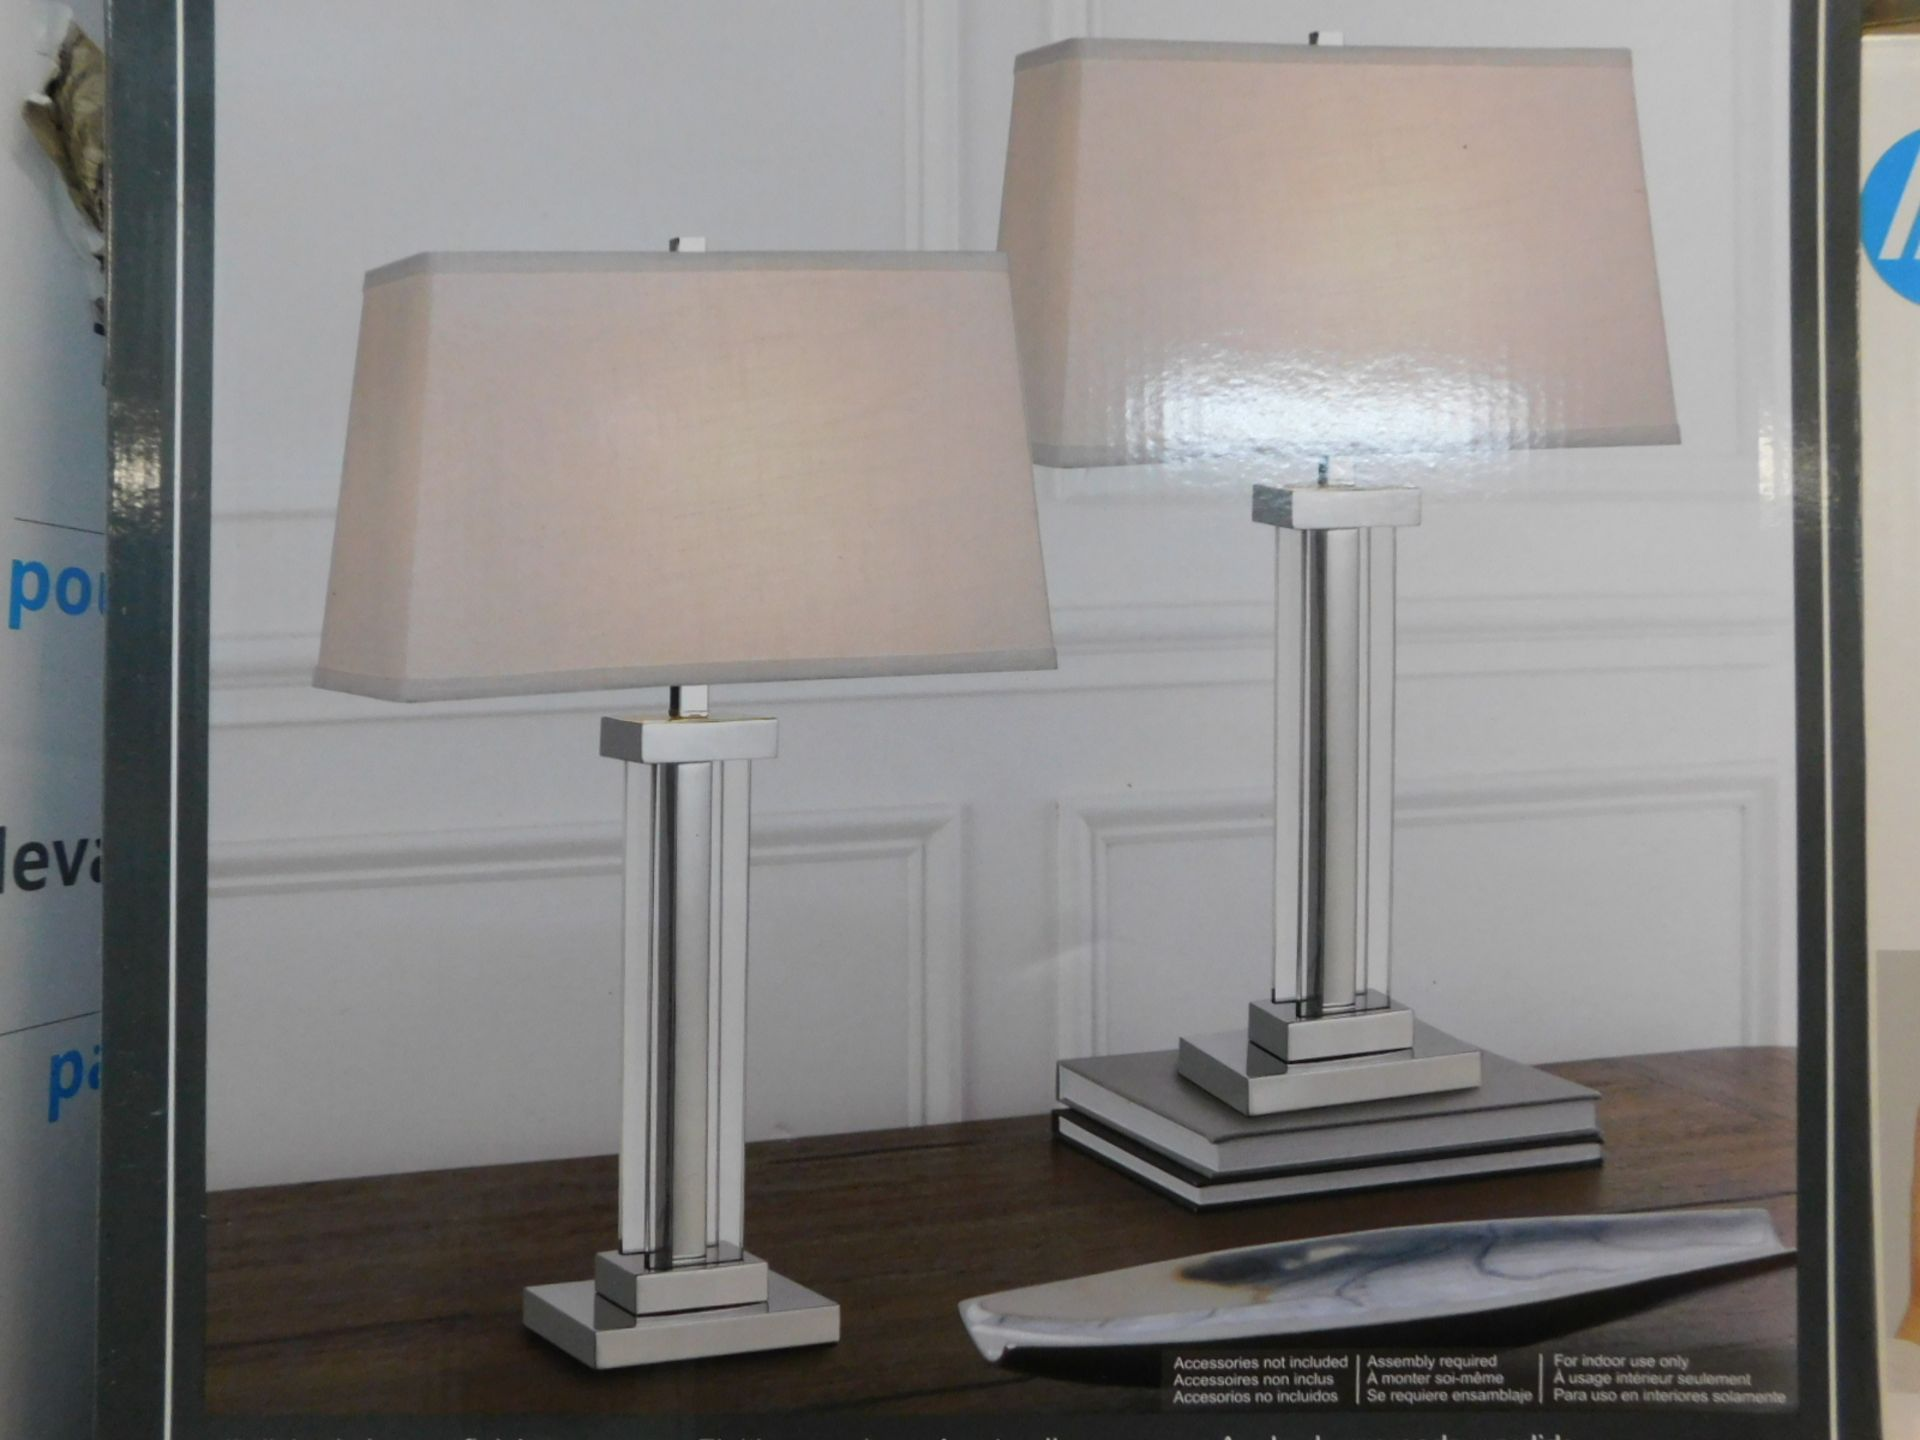 1 BOXED PAIR OF KATE CRYSTAL TABLE LAMPS RRP £79